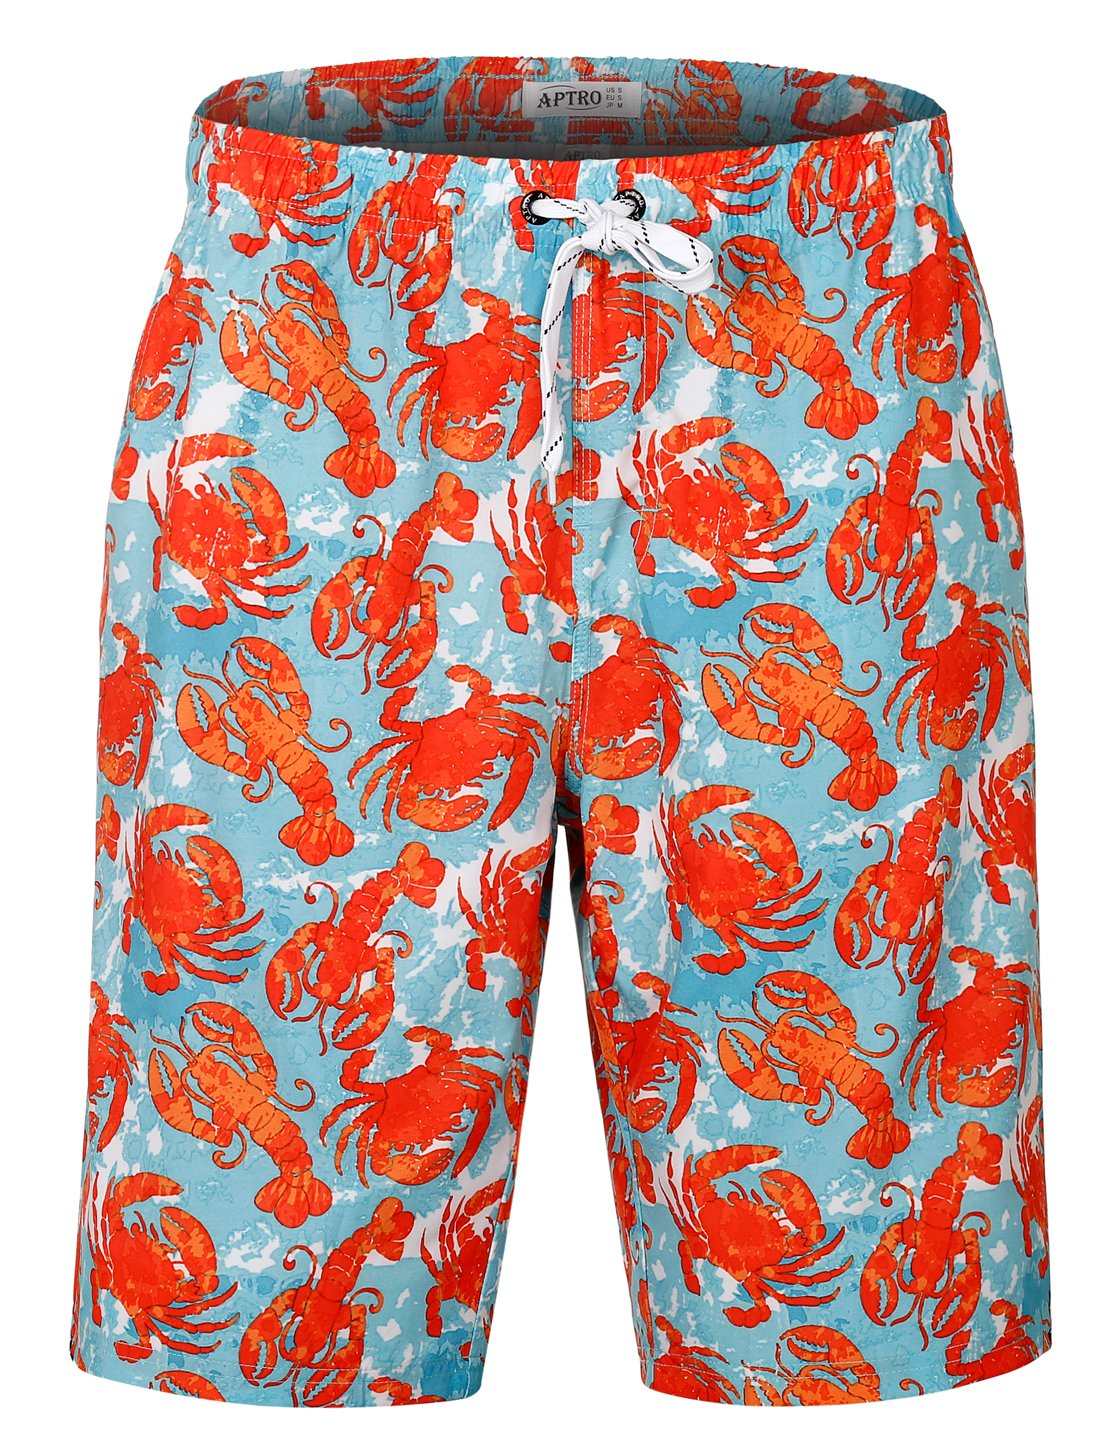 APTRO Men's Swim Trunks Crab Printing Bathing Suit #HW016 XXL by APTRO (Image #1)